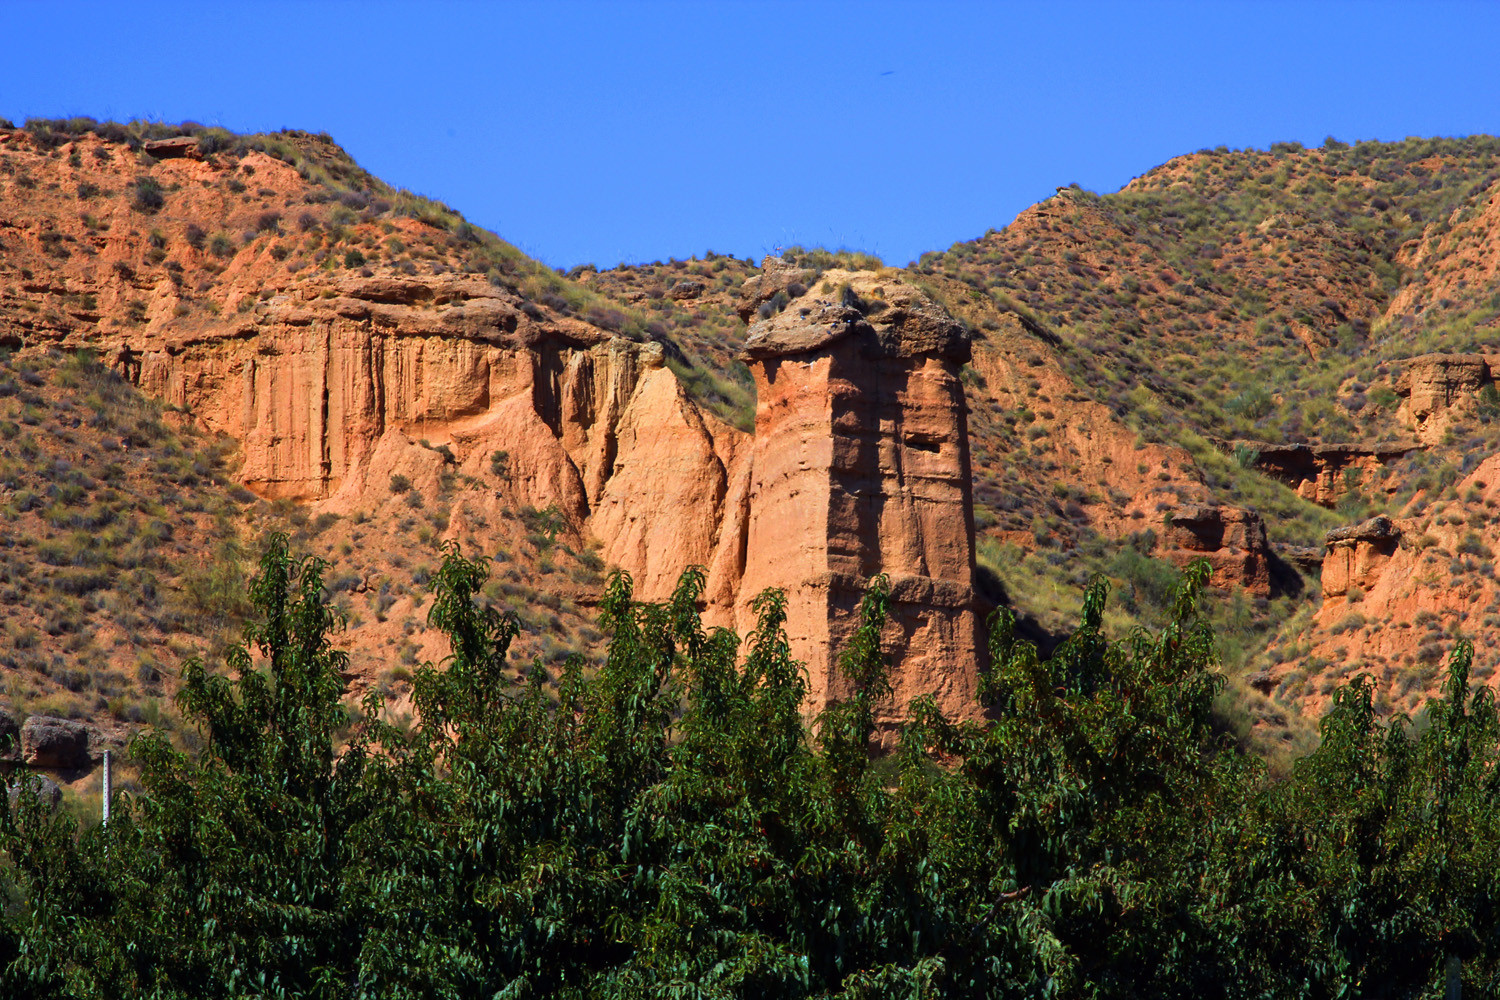 The Rock Formations of Guadix